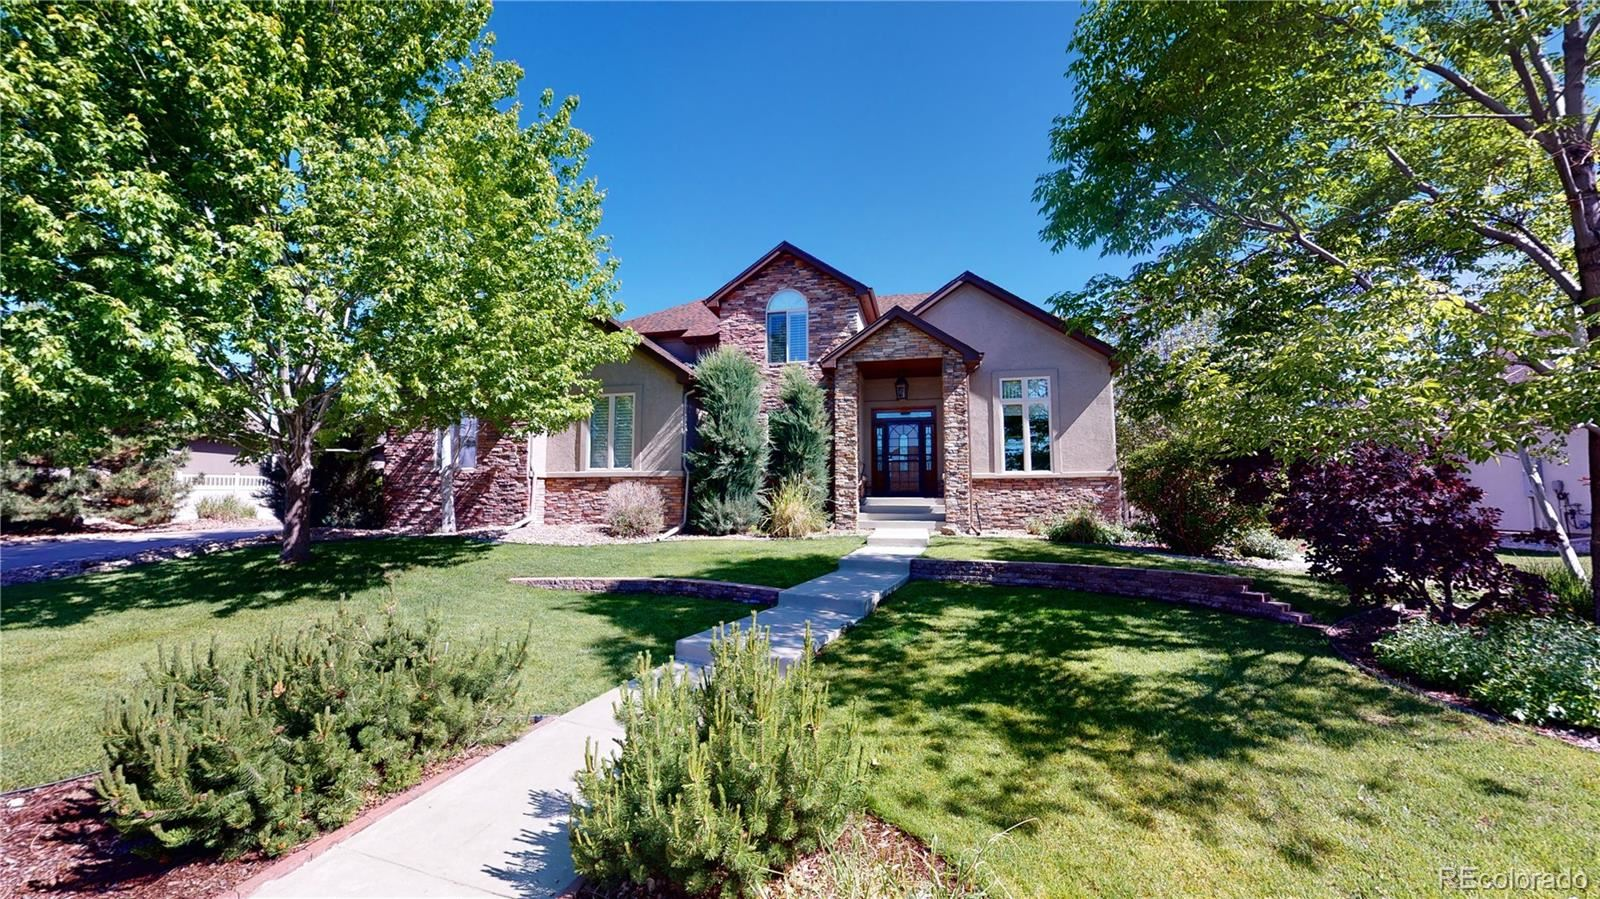 14937 W 54th Drive, Golden, CO 80403 - #: 2535563